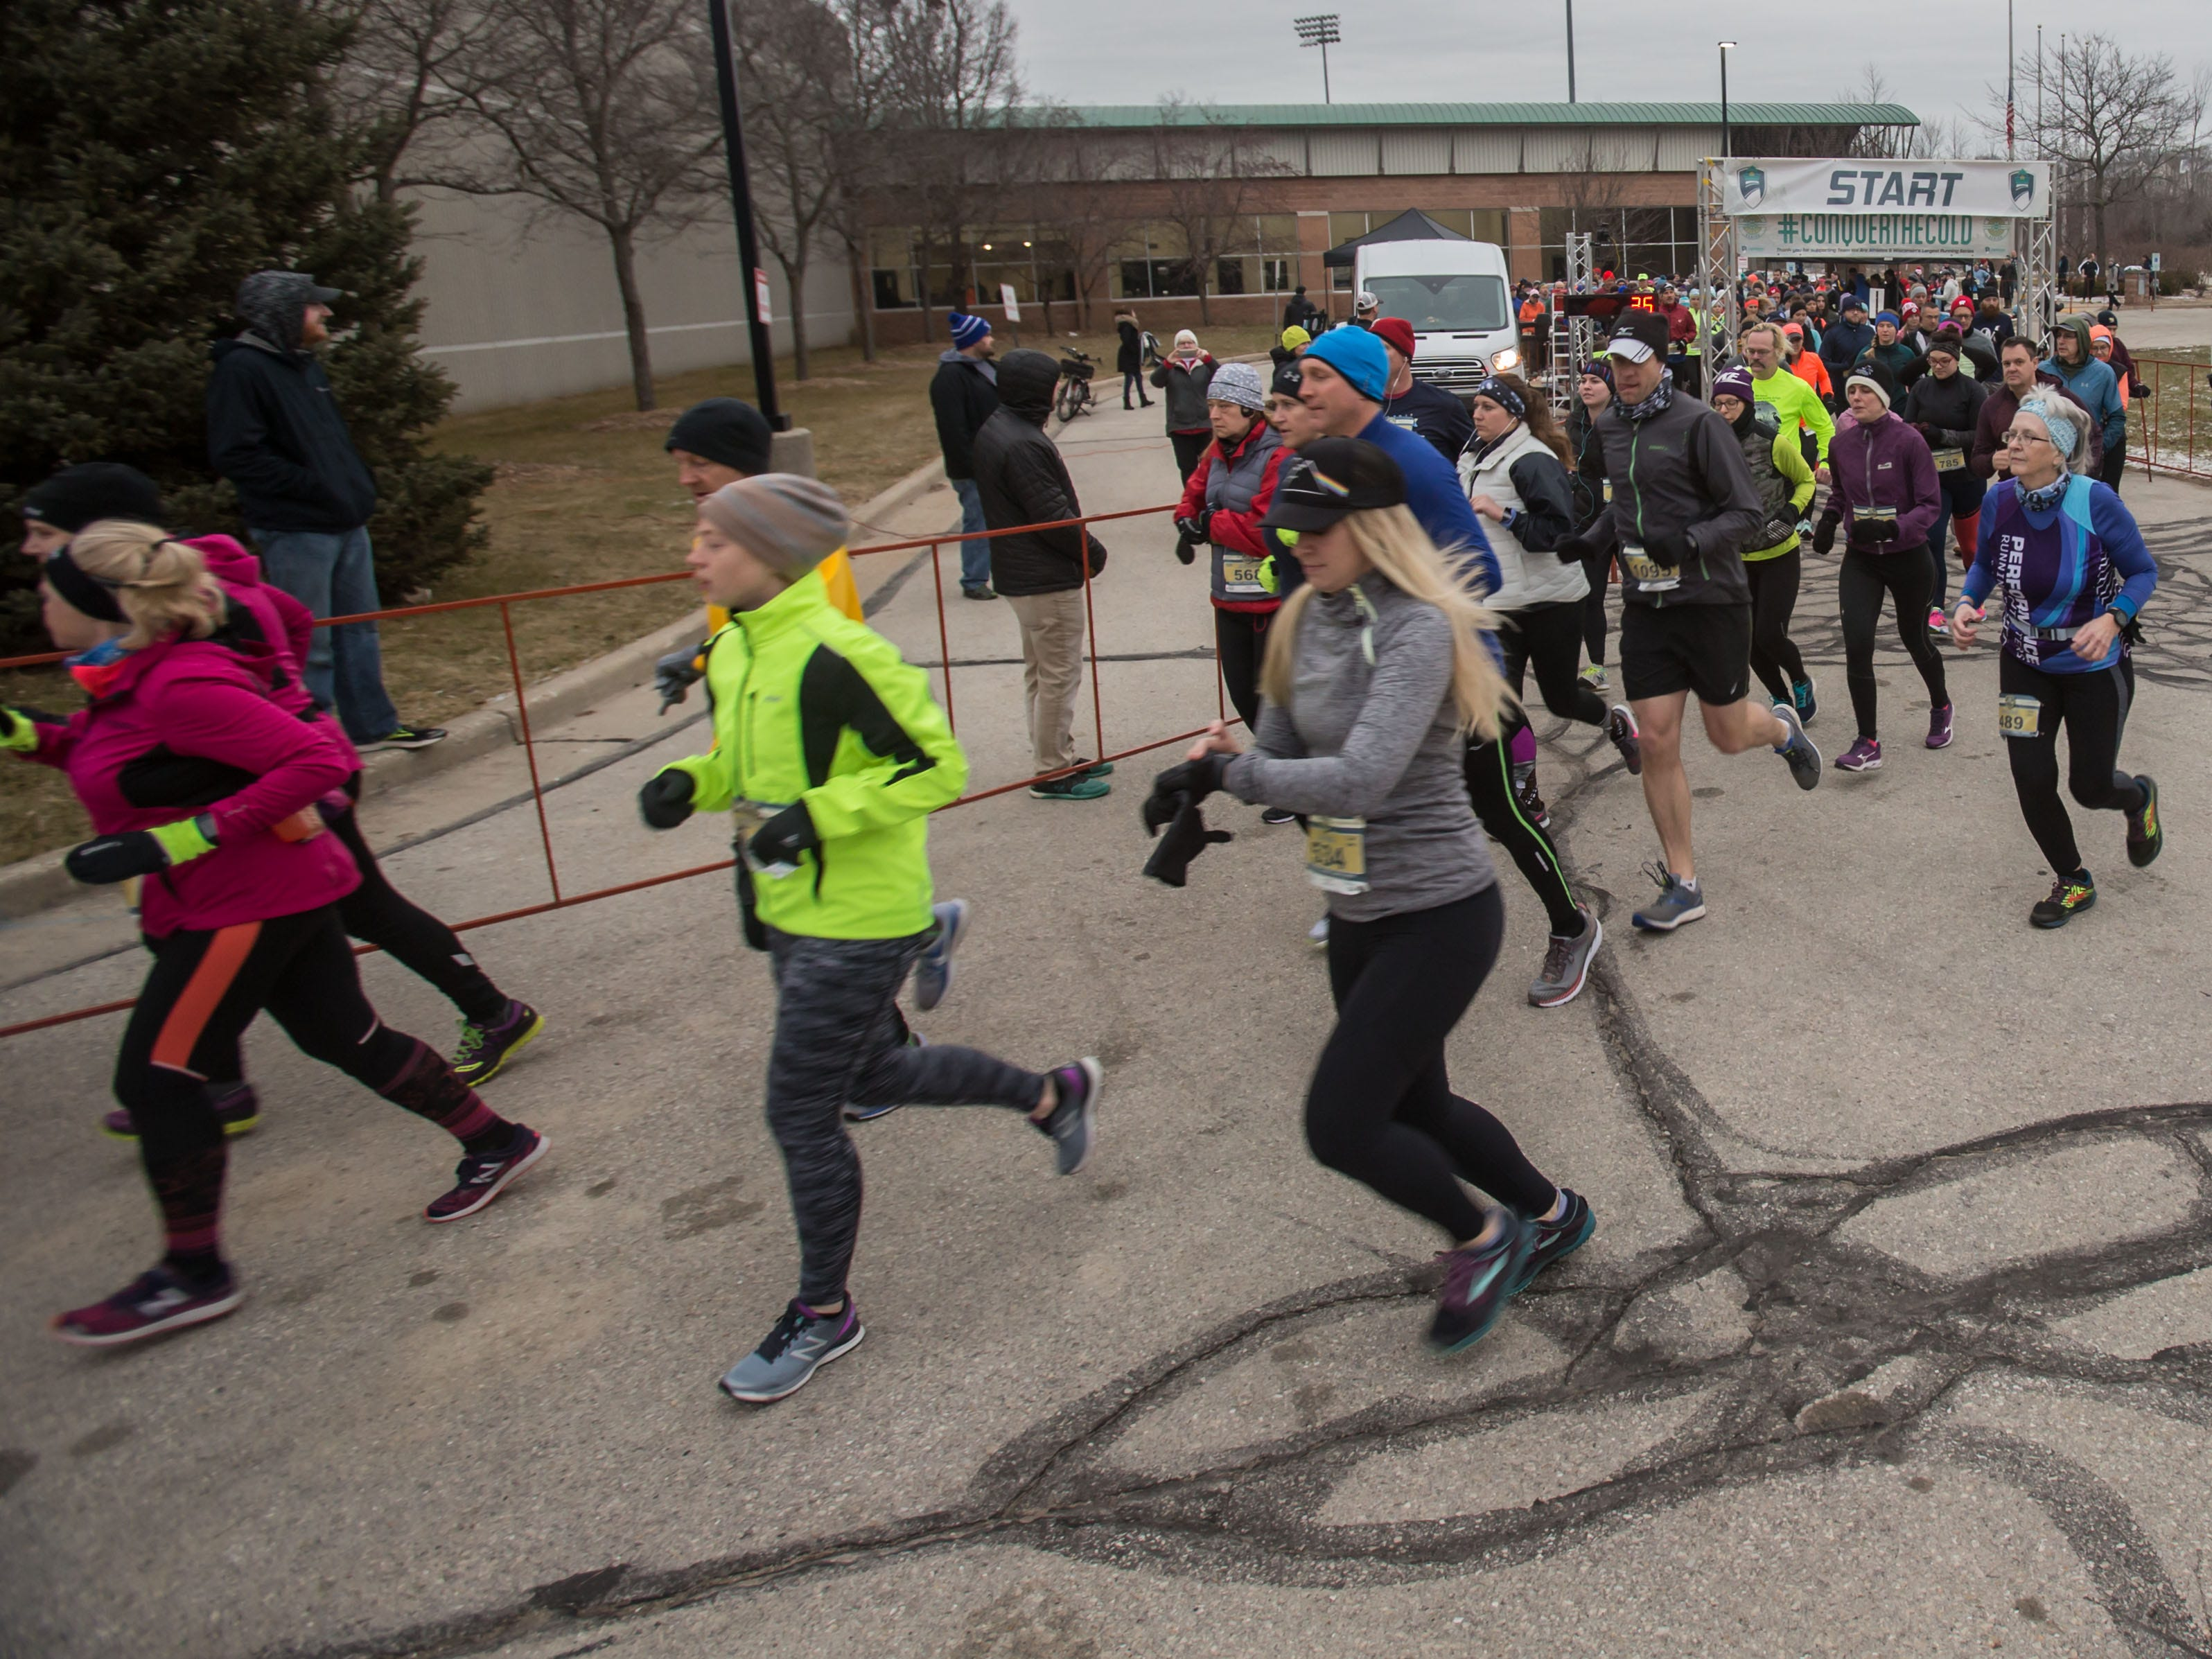 Runners stream past in the 10K race during the 14th annual Run Into the New Year hosted by Lighthouse Events at the Milwaukee County Sports Complex in Franklin on Monday, Dec. 31, 2018.